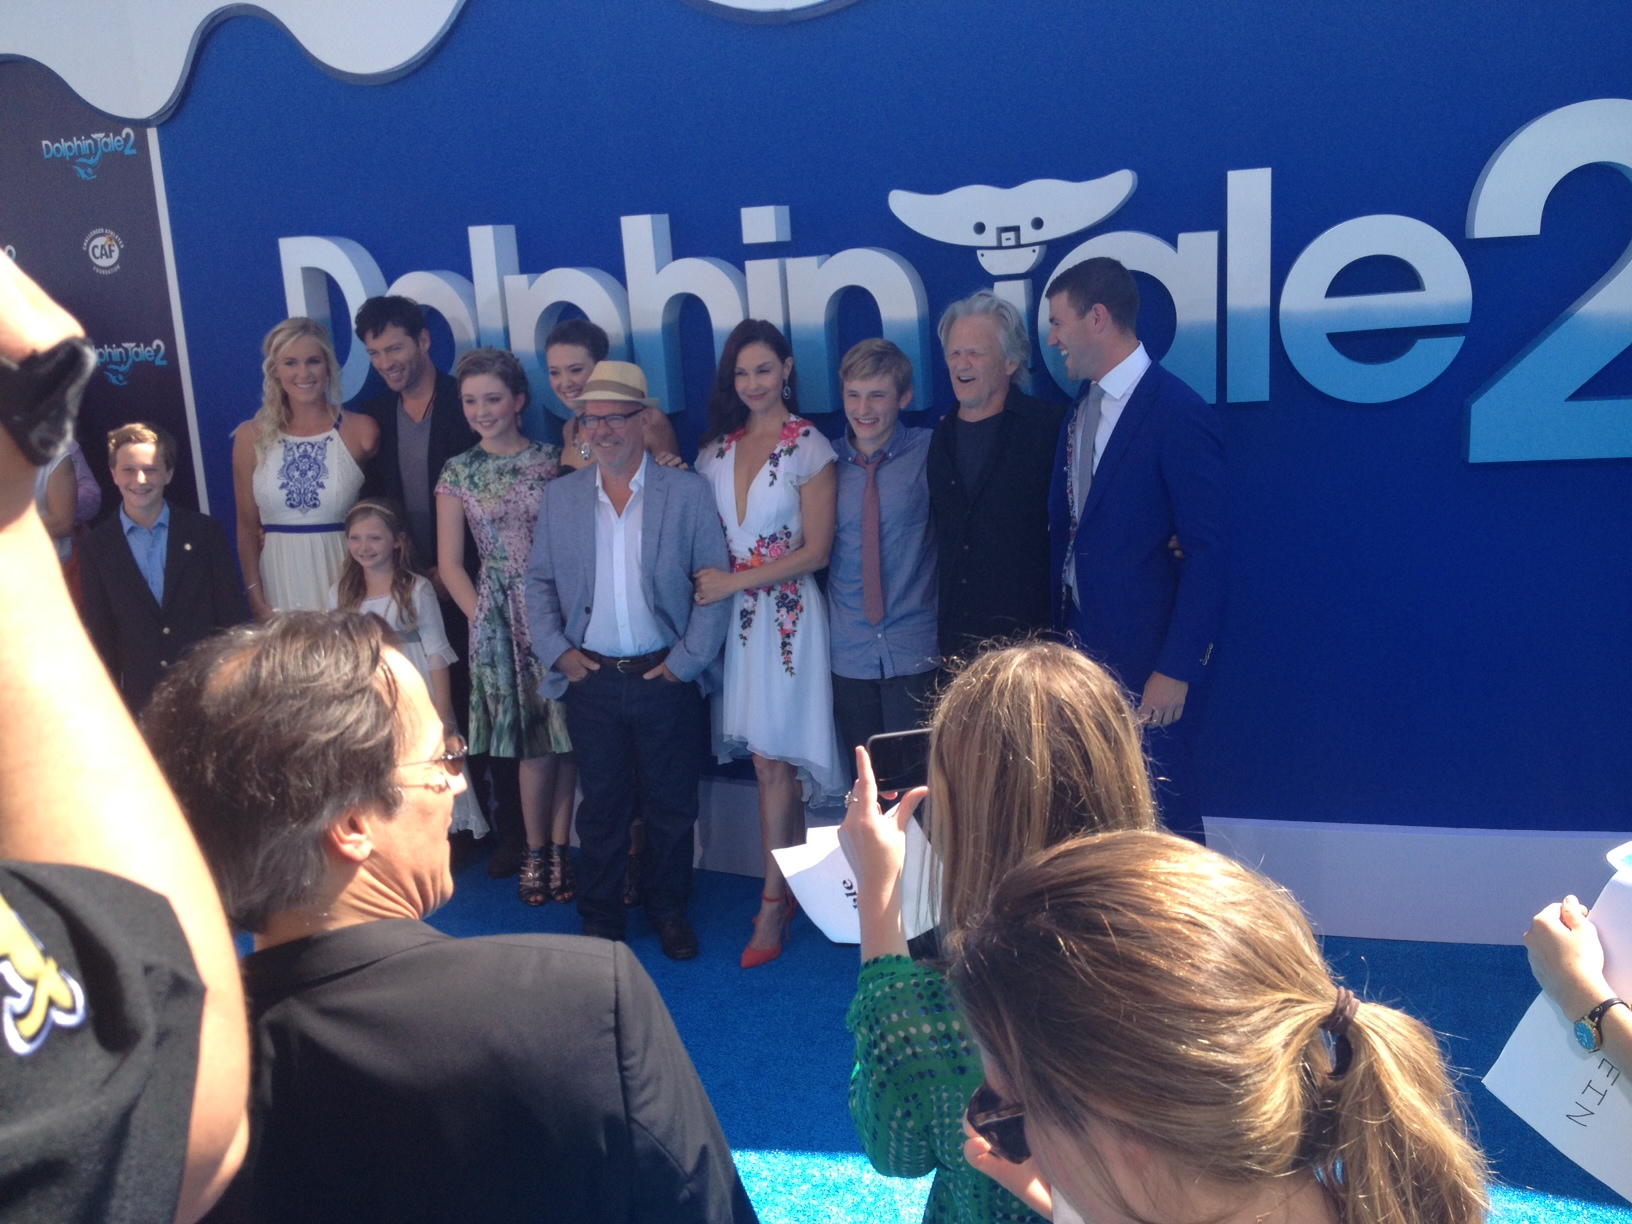 dolphin tale cast